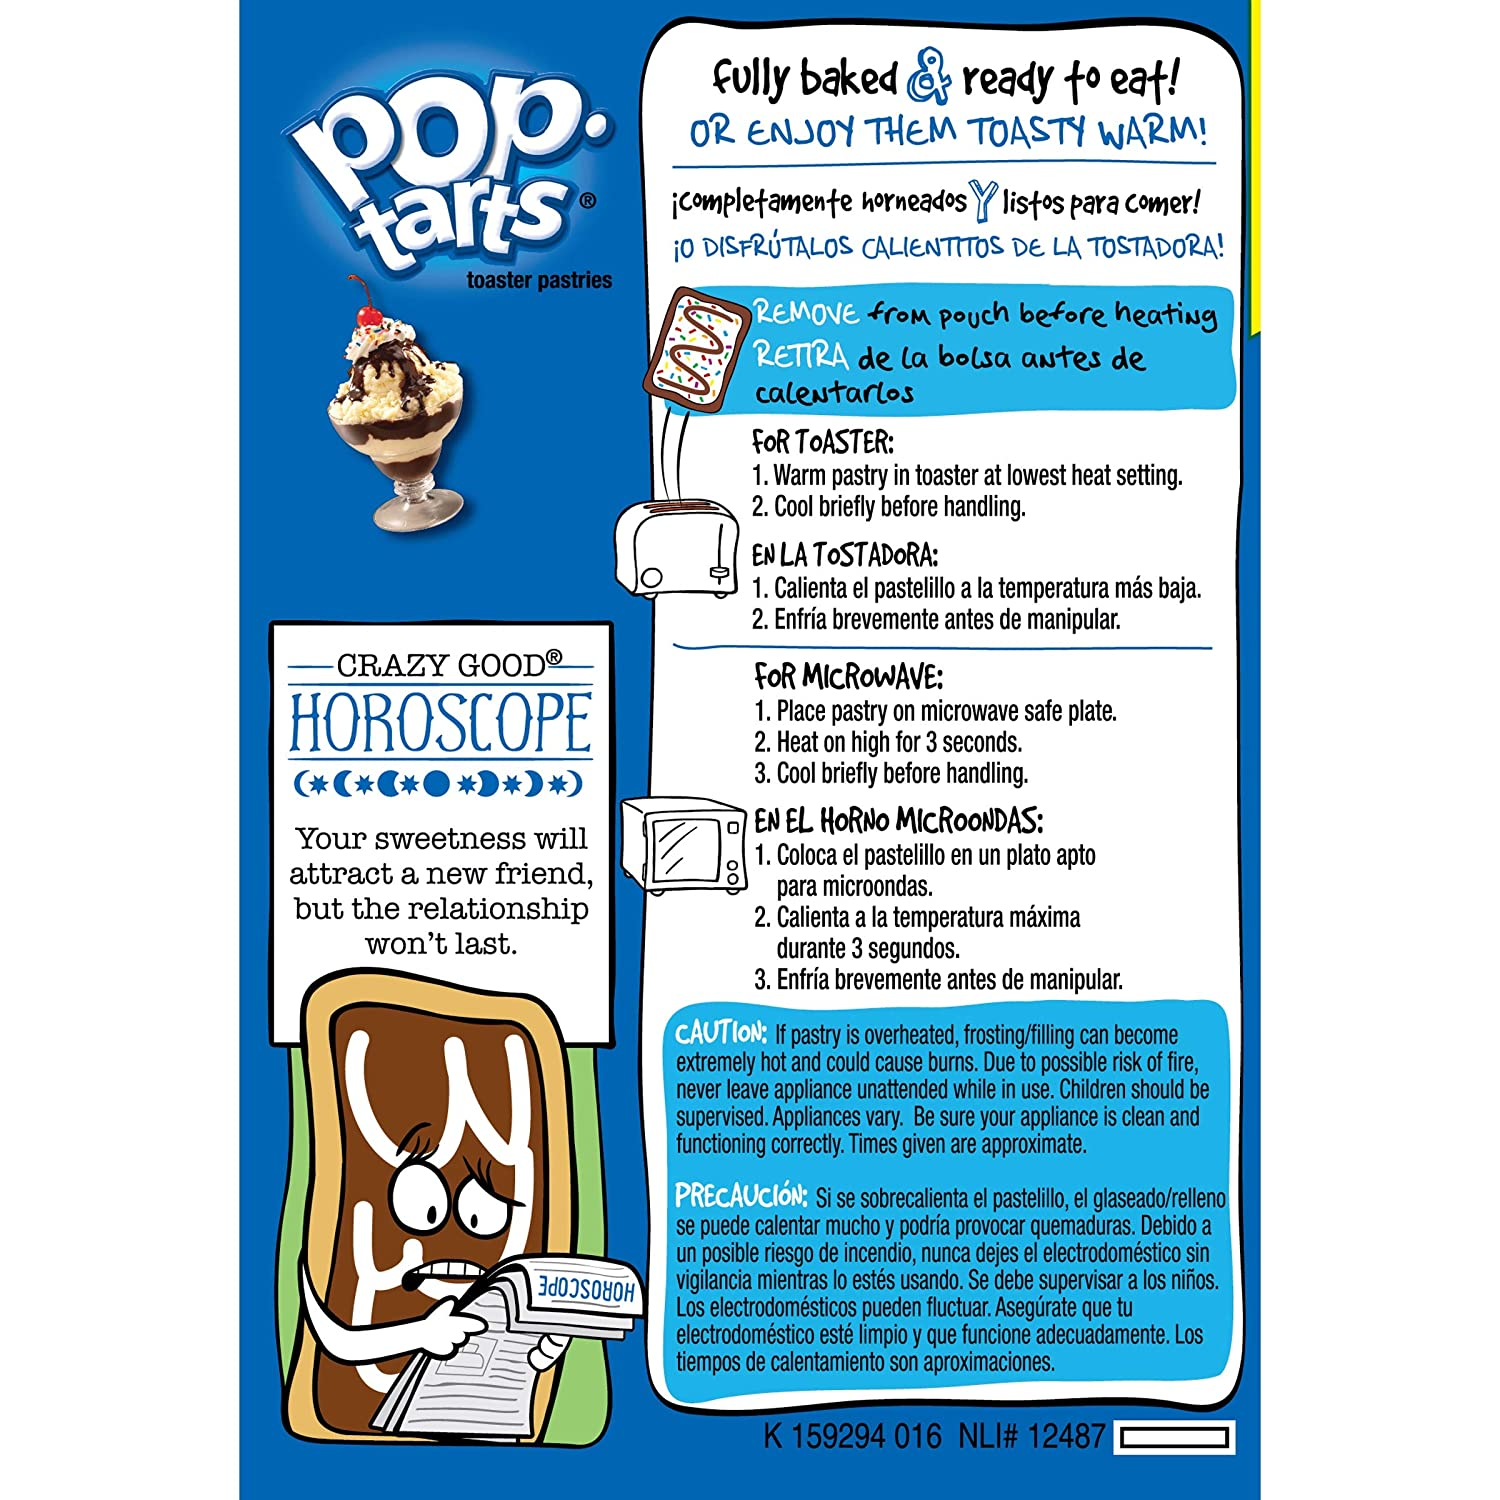 Pop-Tarts Toaster Pastries, Frosted Hot Fudge Sundae, 16 Count - 4 Pack